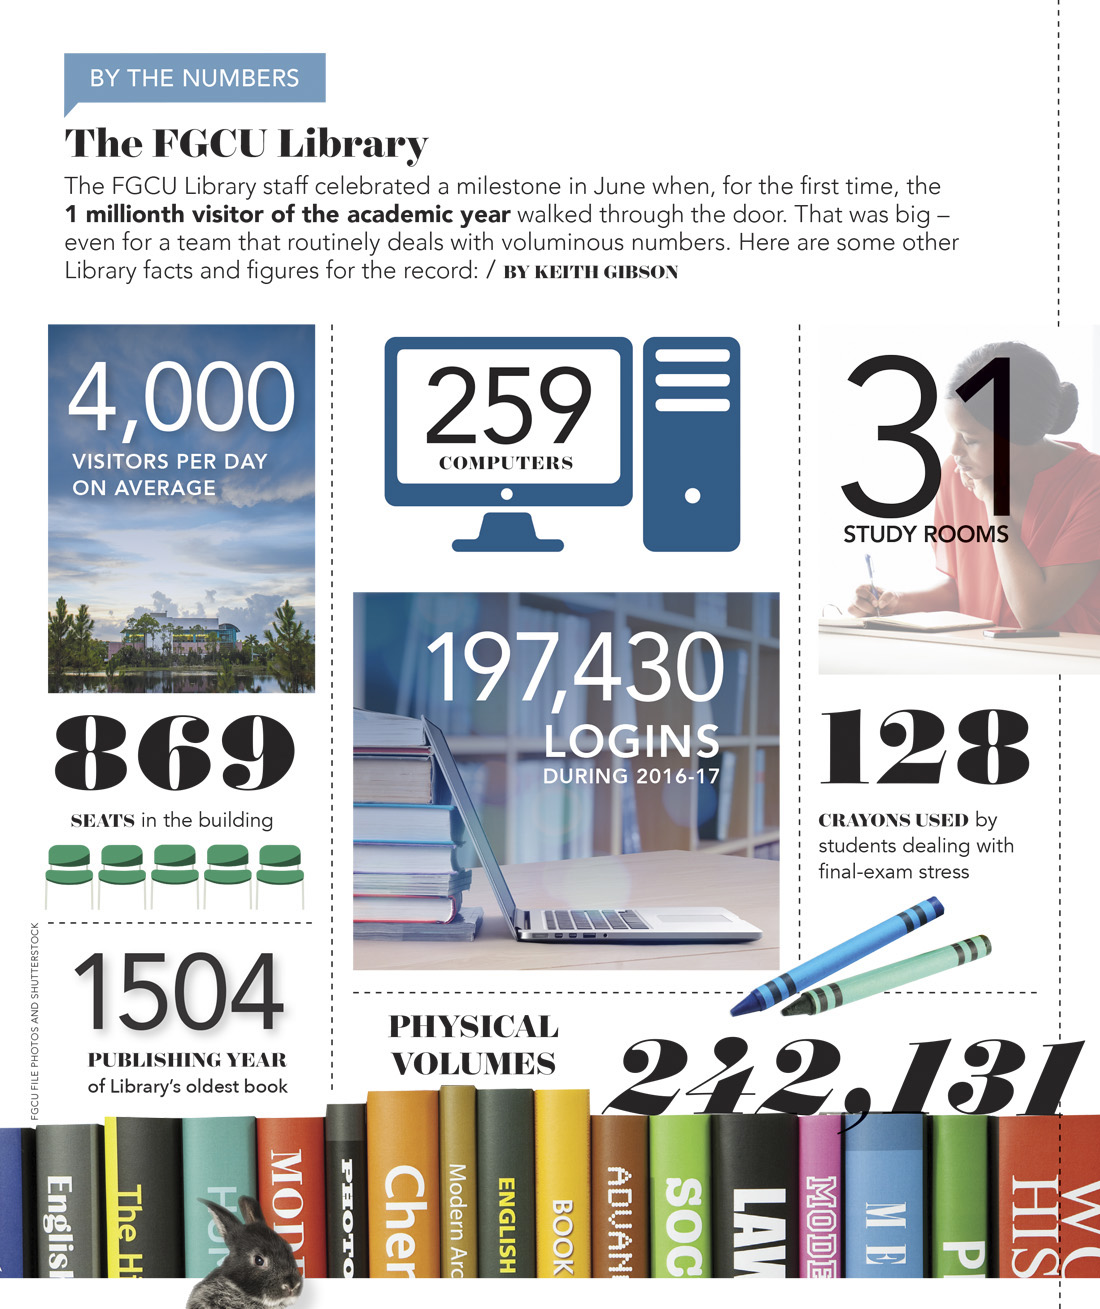 FGCU Library - By the Numbers